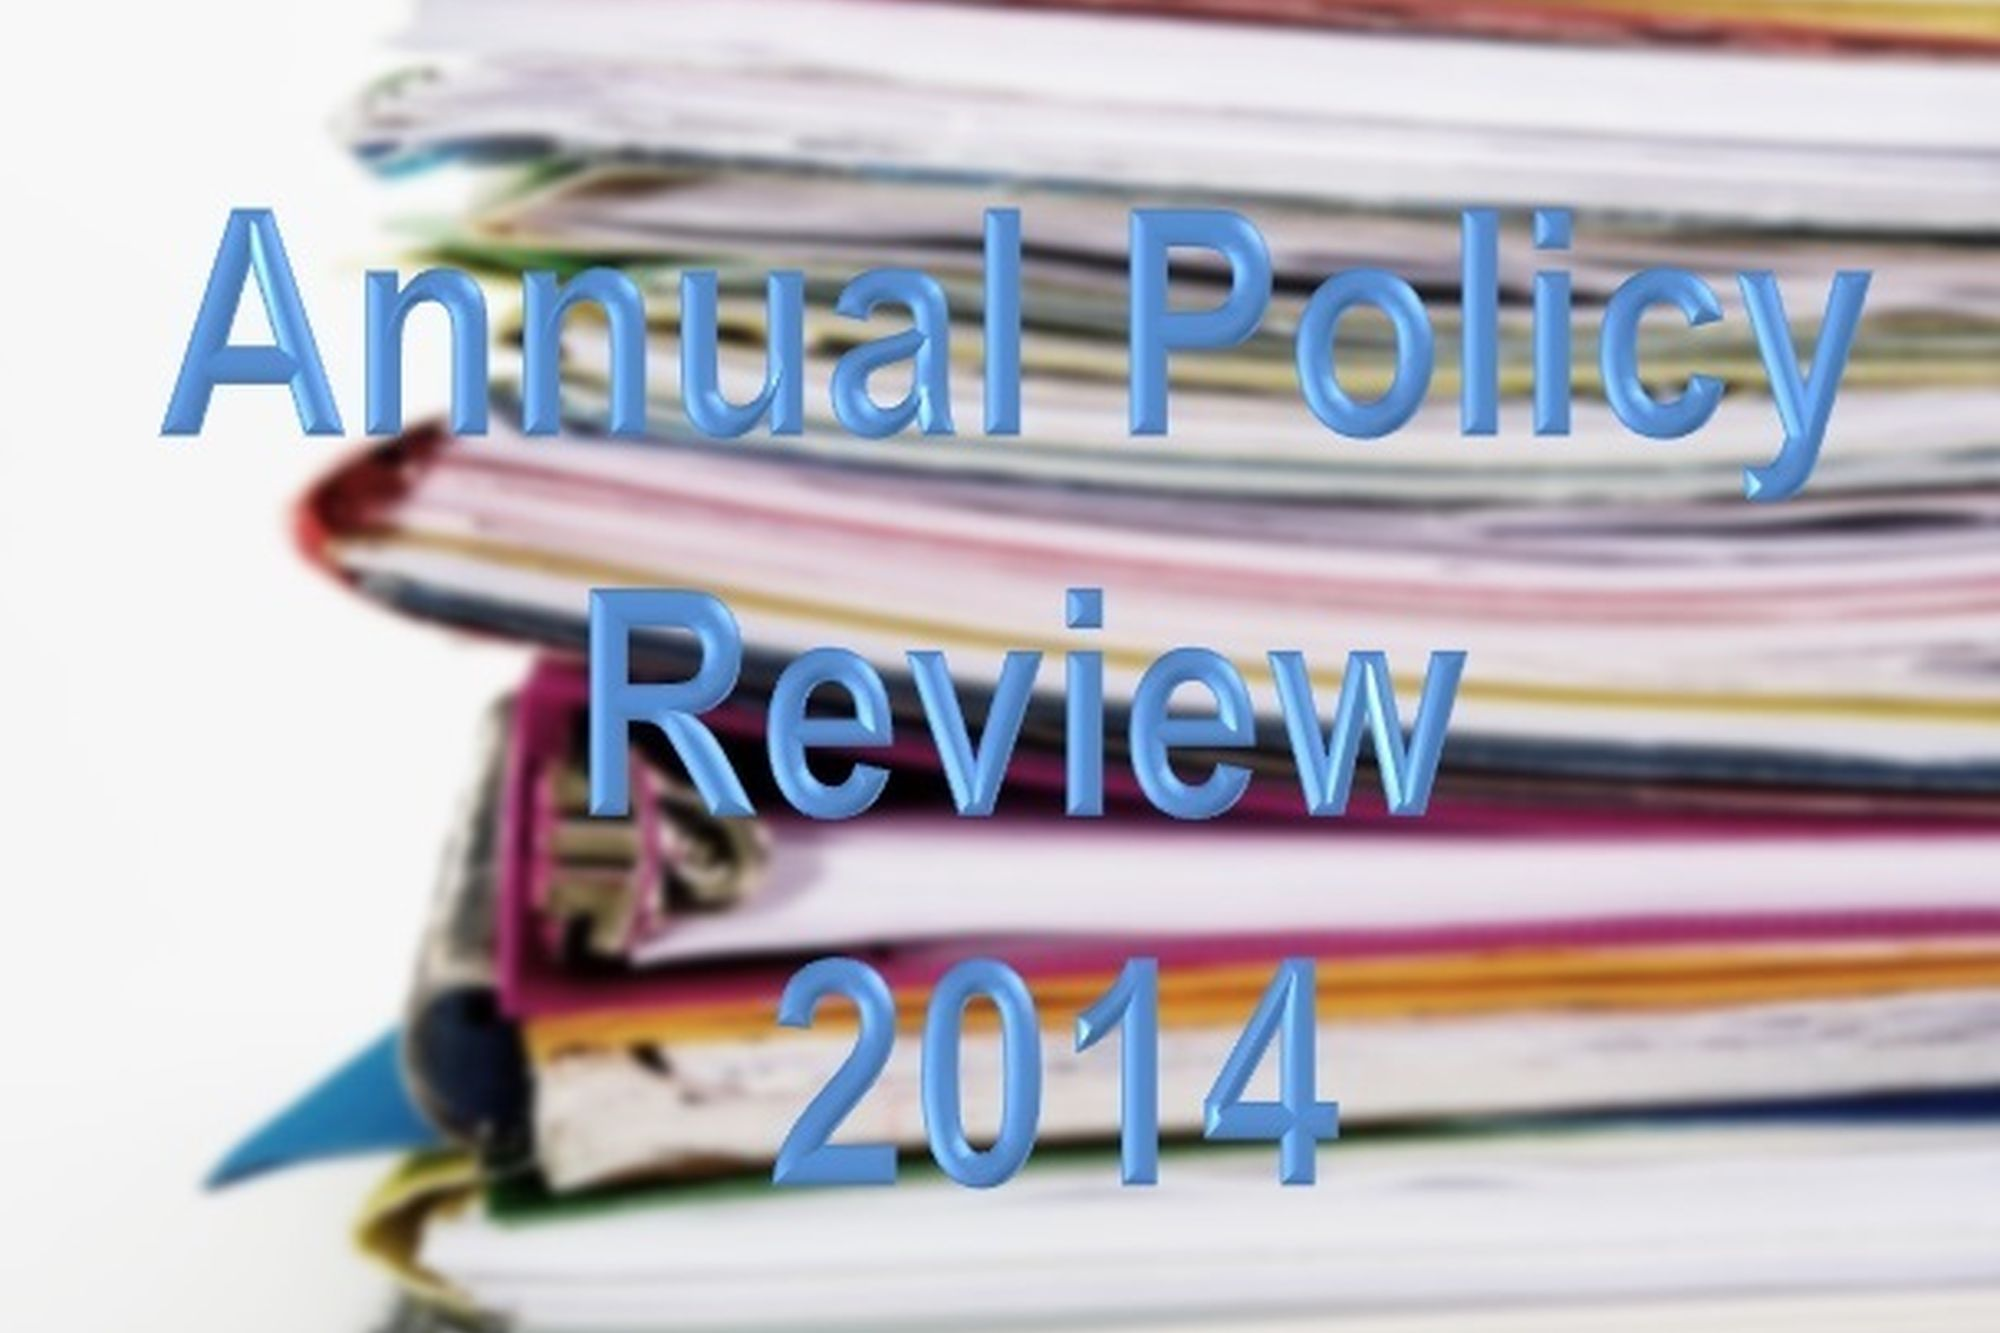 Annual Policy Review 2014